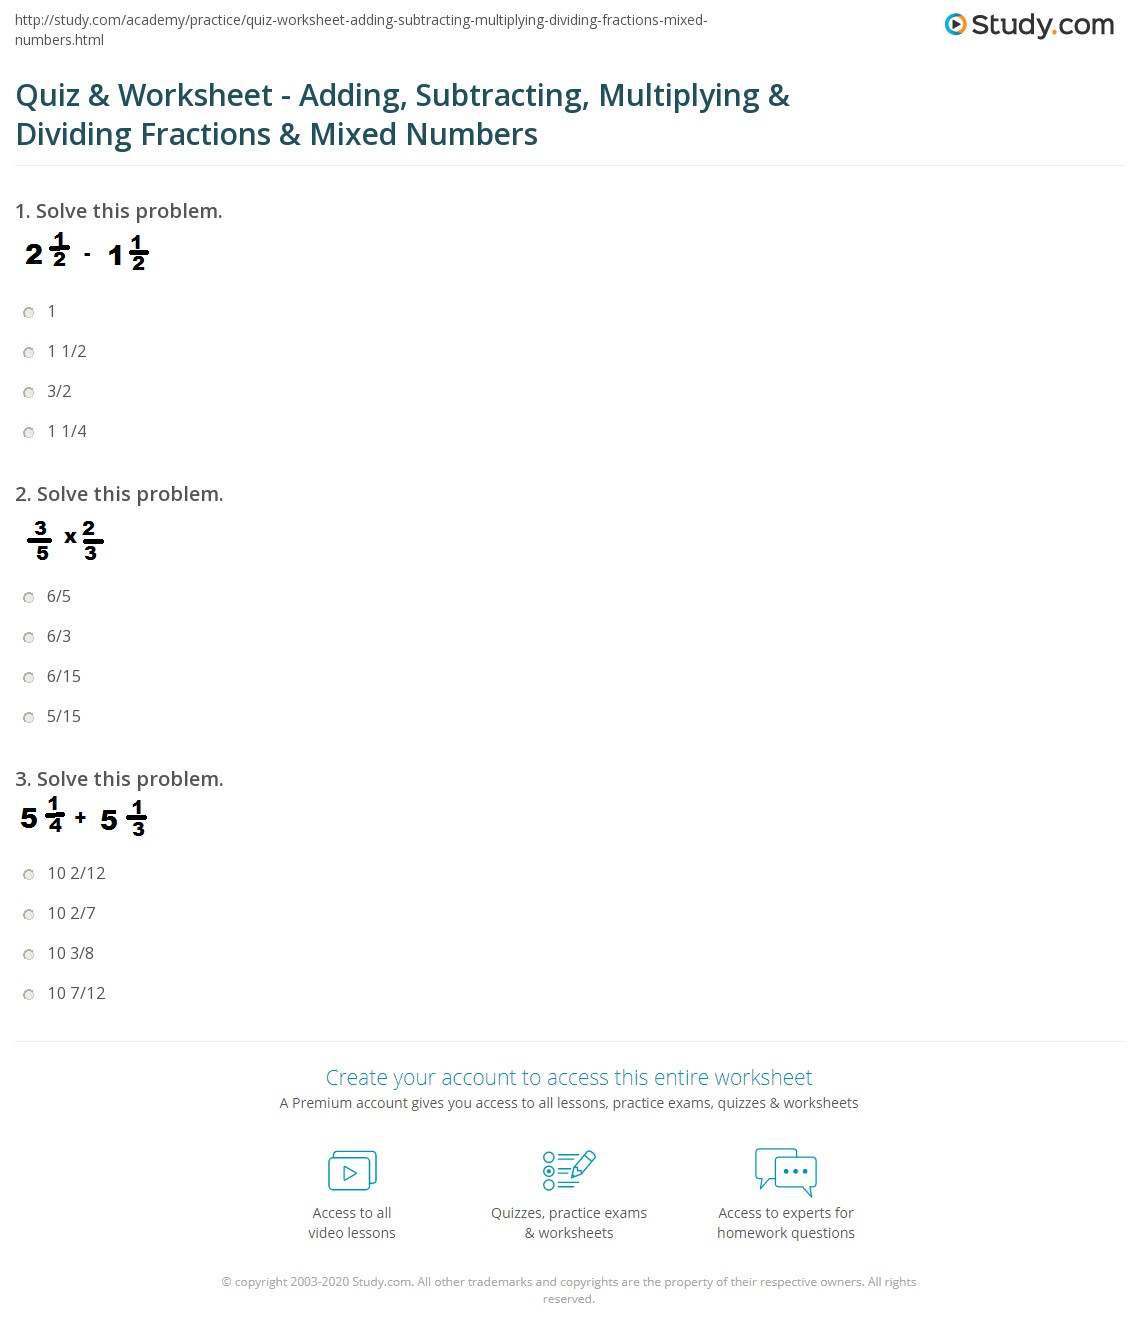 Quiz and Worksheet Adding Subtracting Multiplying and Dividing – Adding Subtracting Multiplying and Dividing Fractions Worksheet